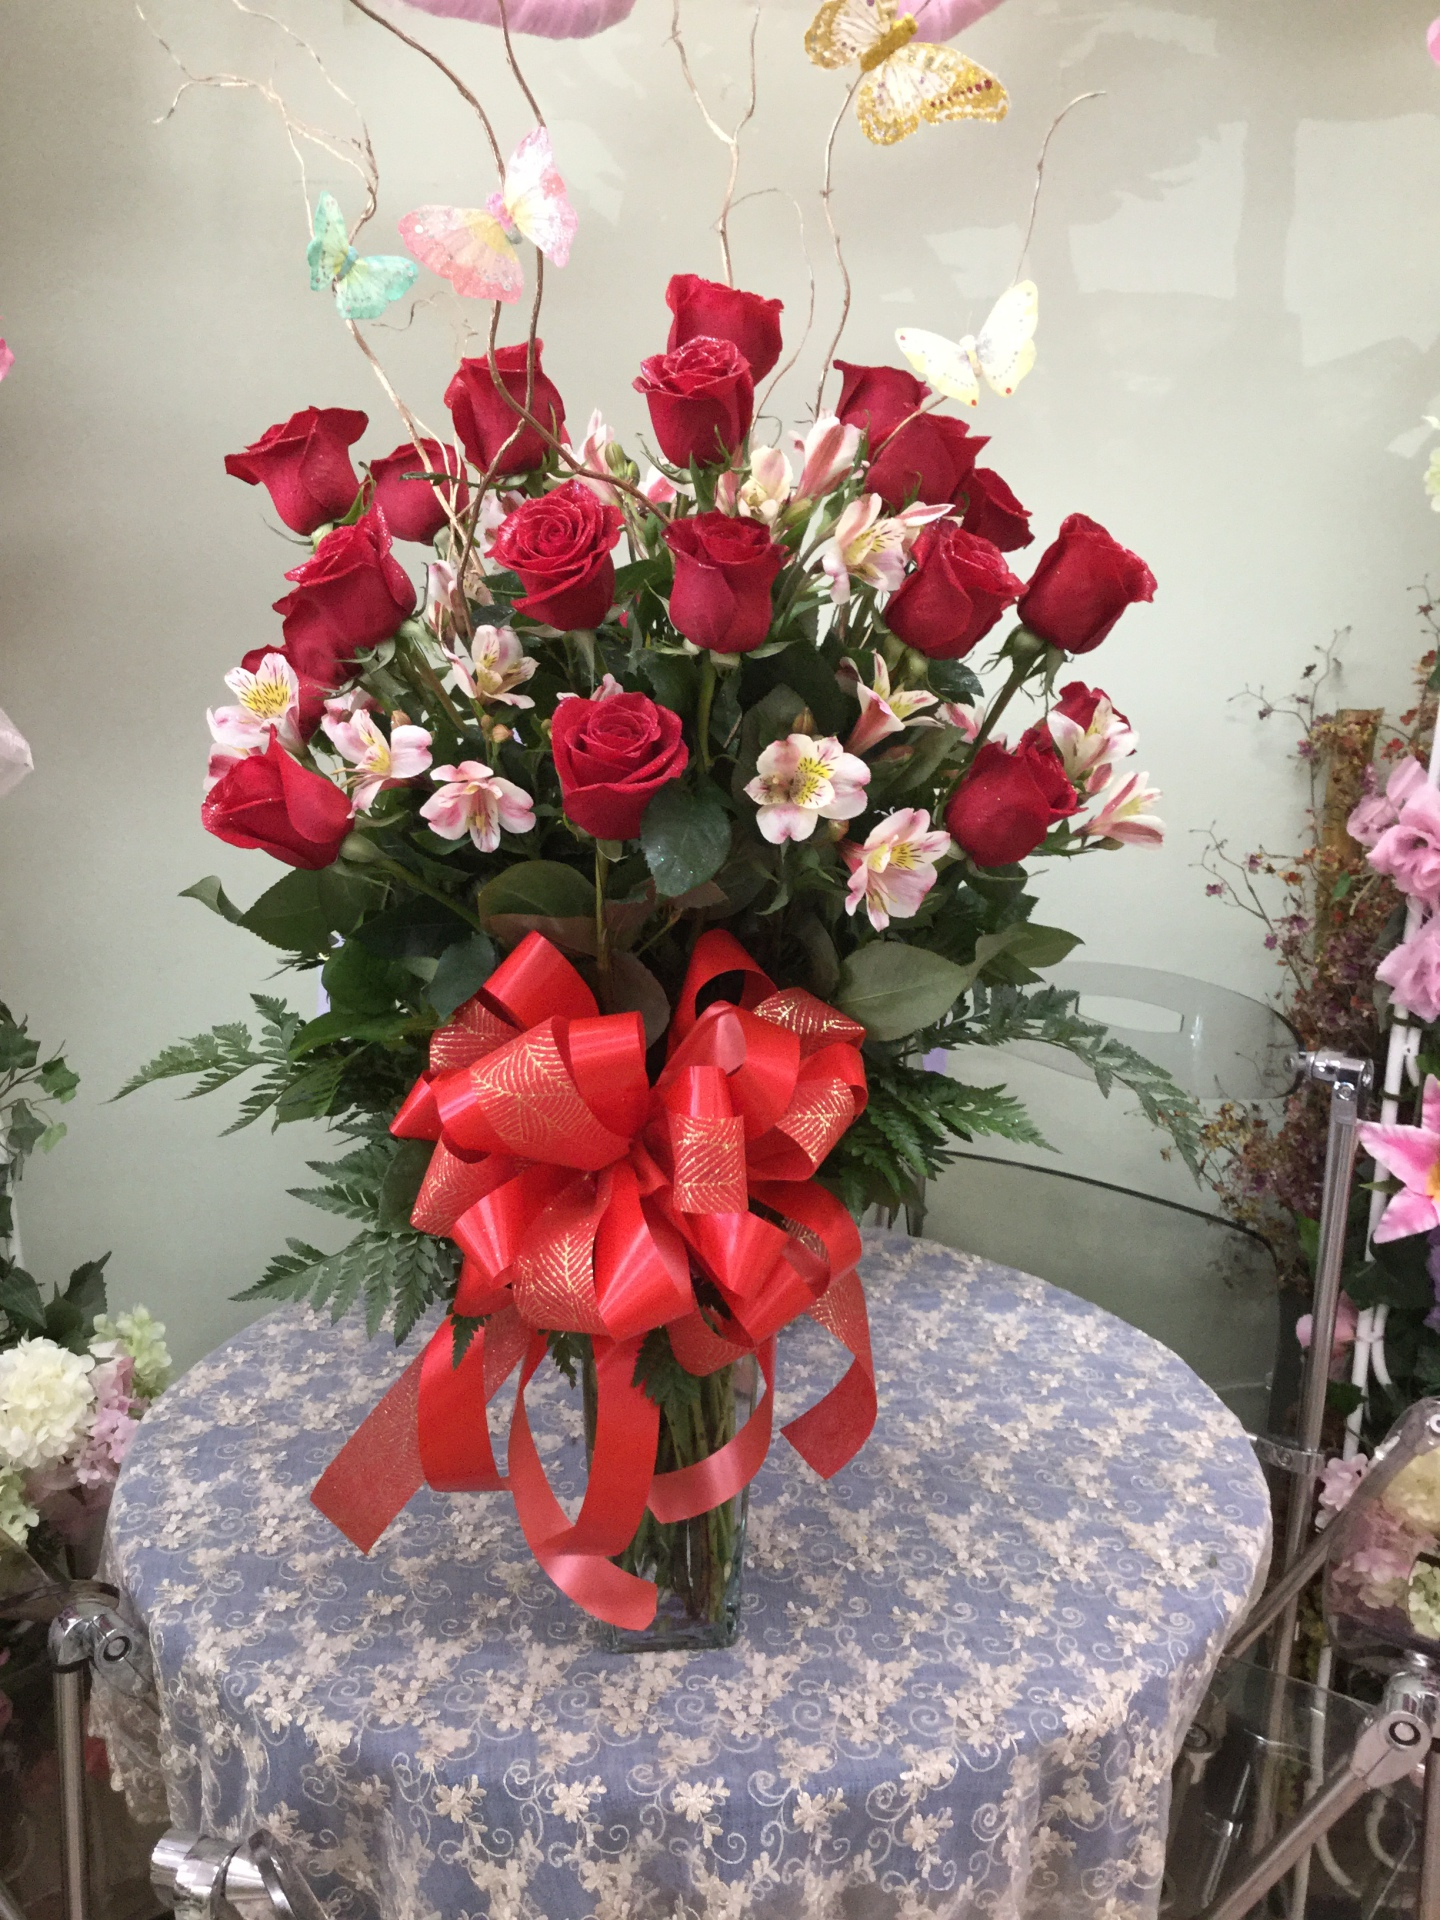 Eighteen Red Roses with Alstroemeria - Arrangement in Vase